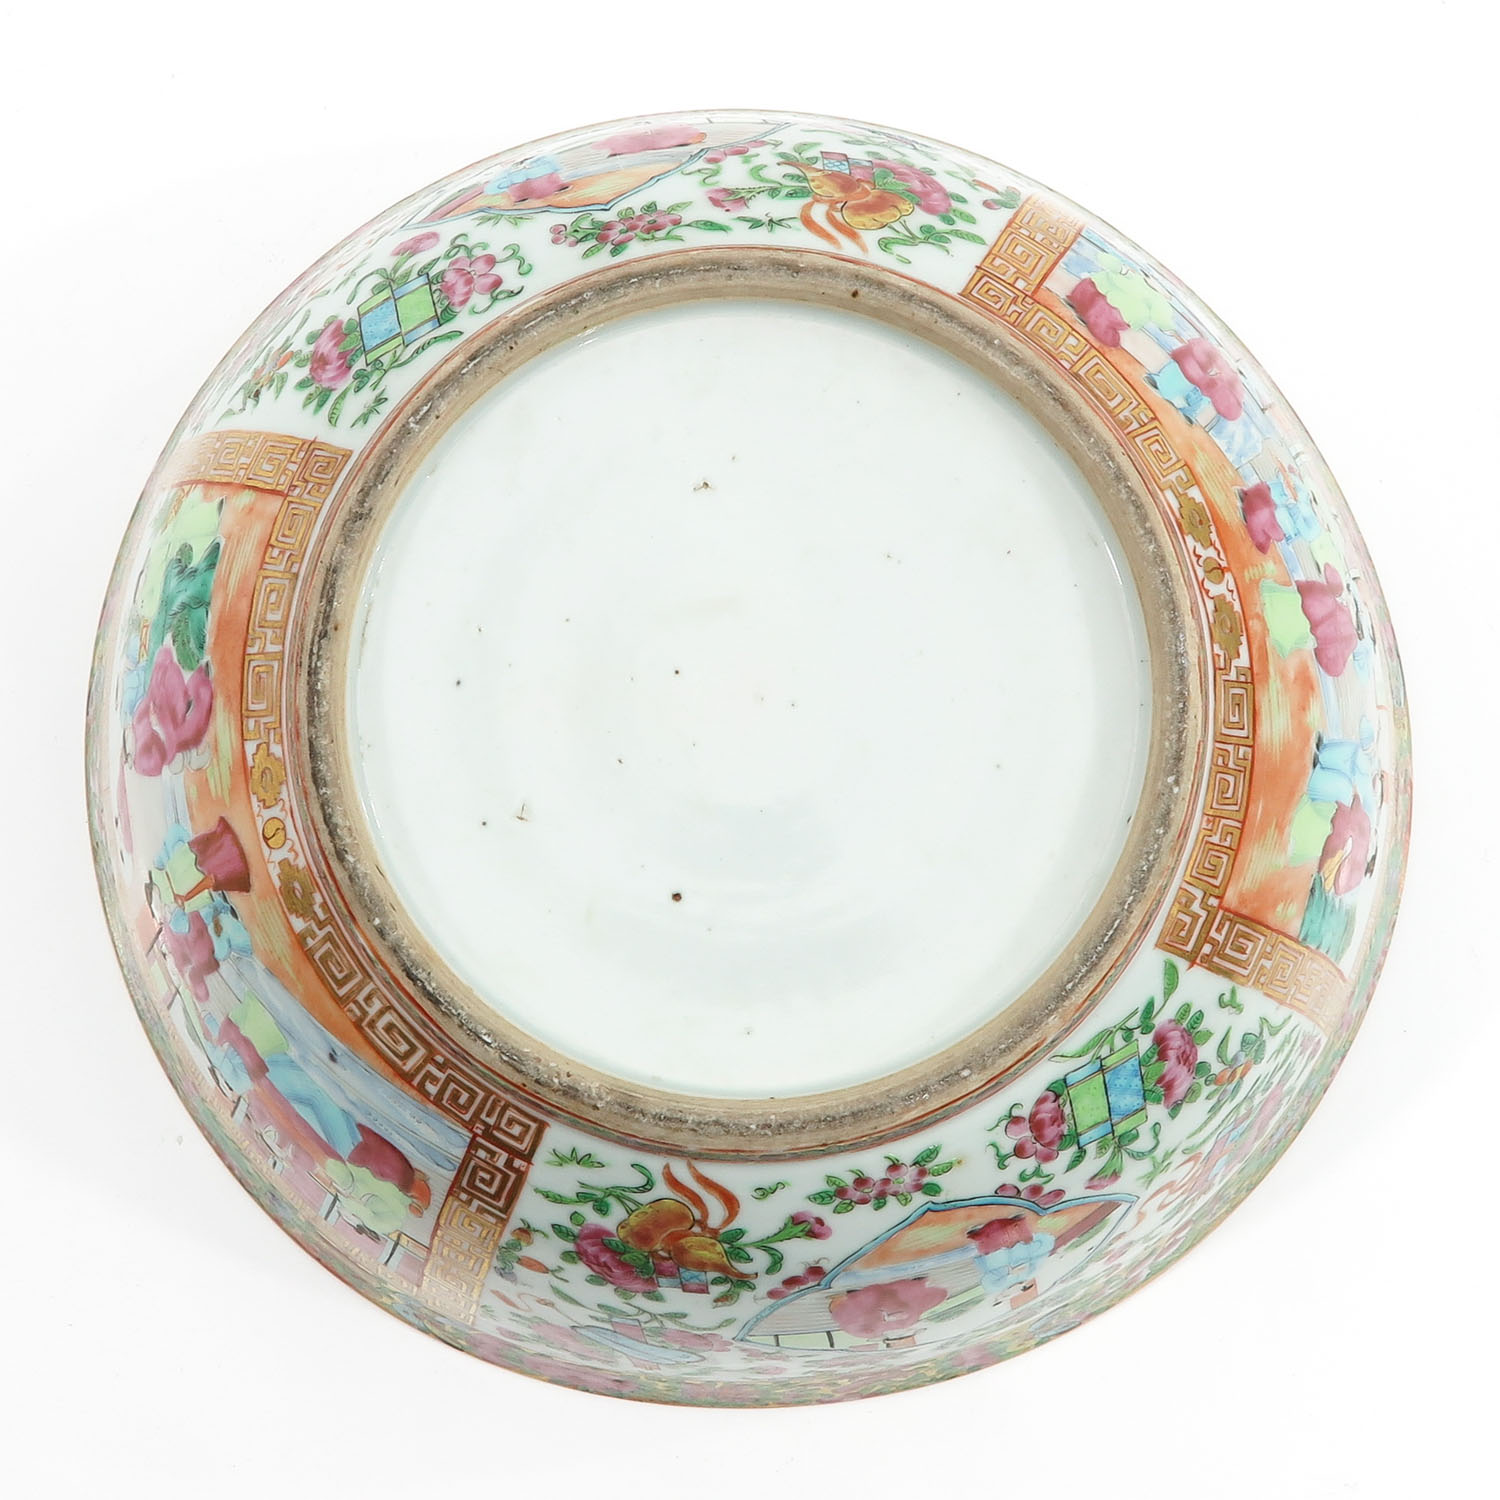 A Cantonese Bowl - Image 6 of 10